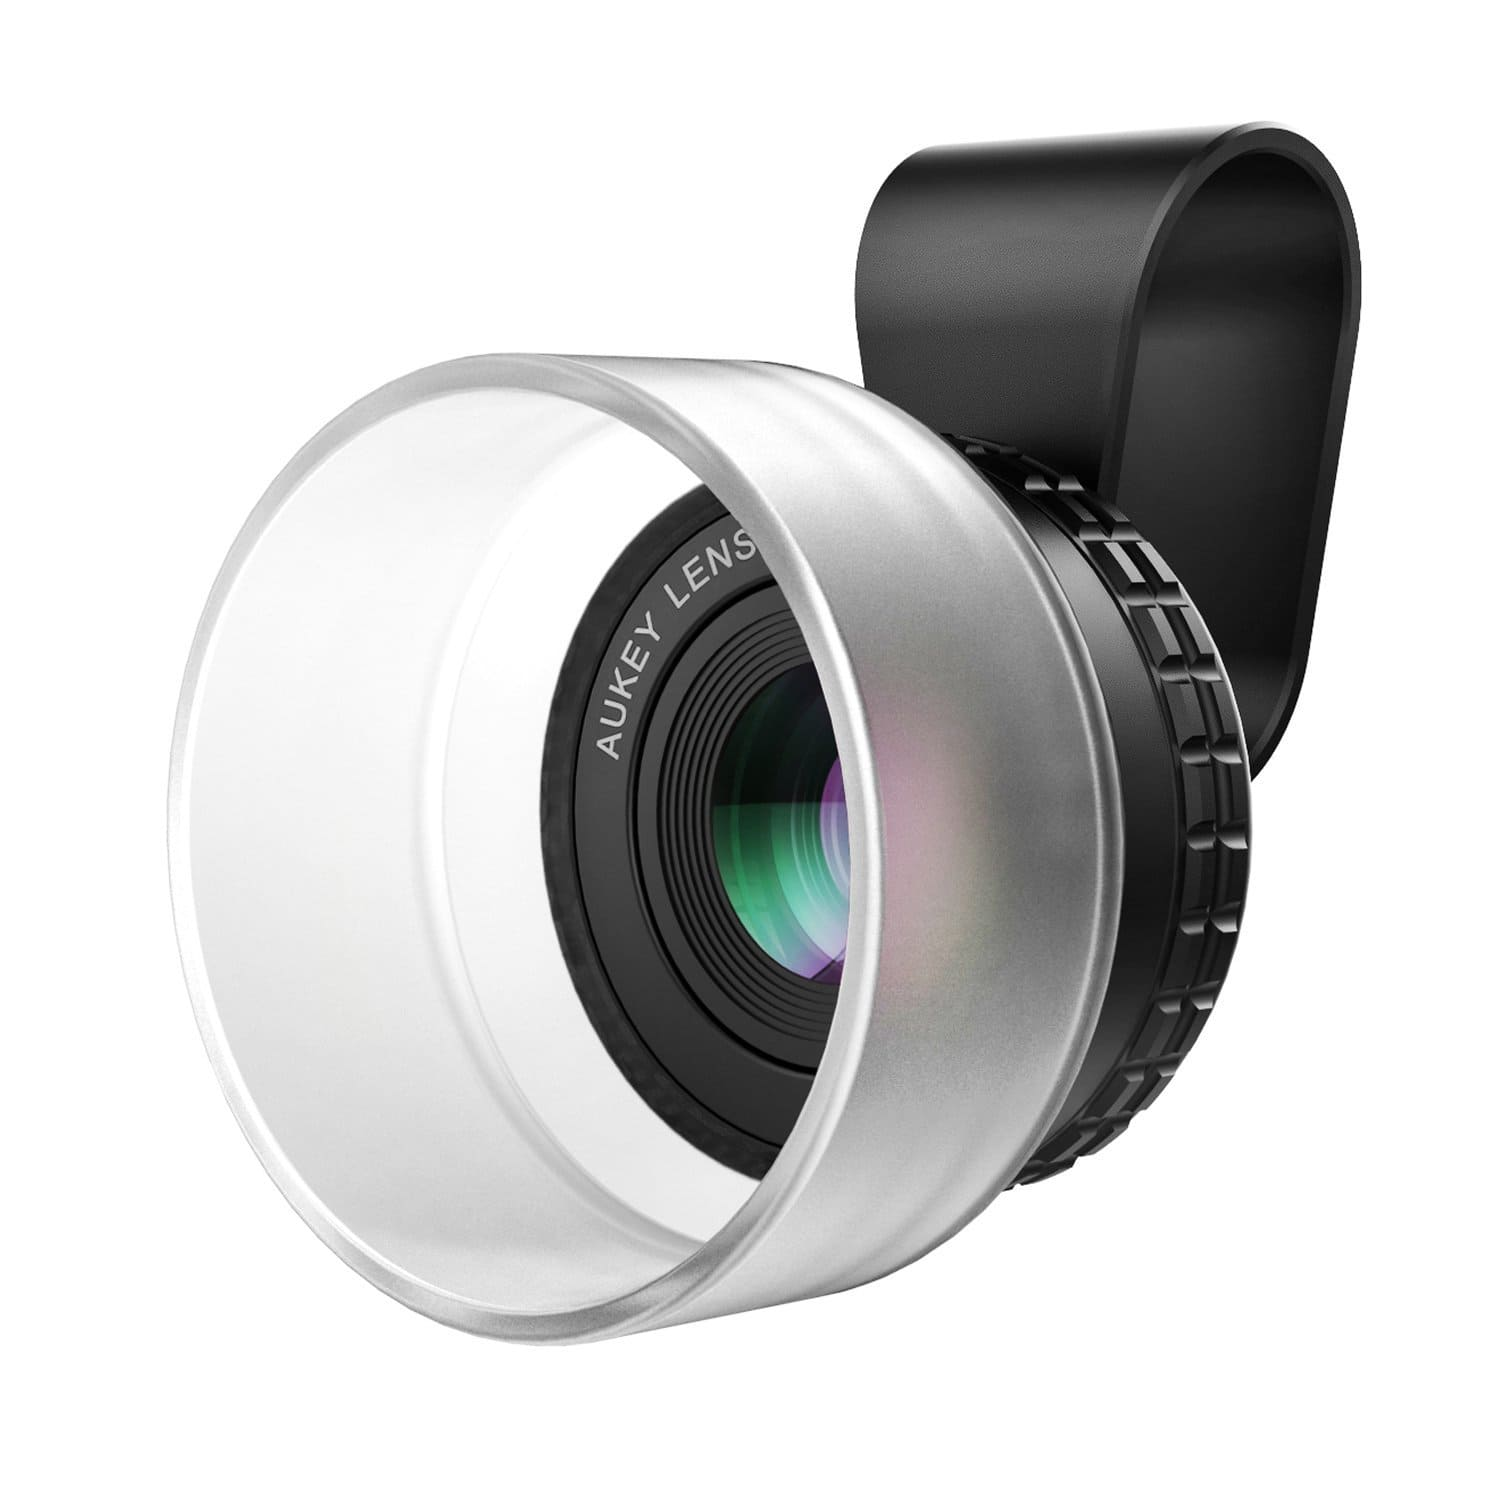 Aukey Macro Lenses for iphone / samsung & others: 10x macro $6, ultra wde 0.2x 238° Field of View $13 + free s/h